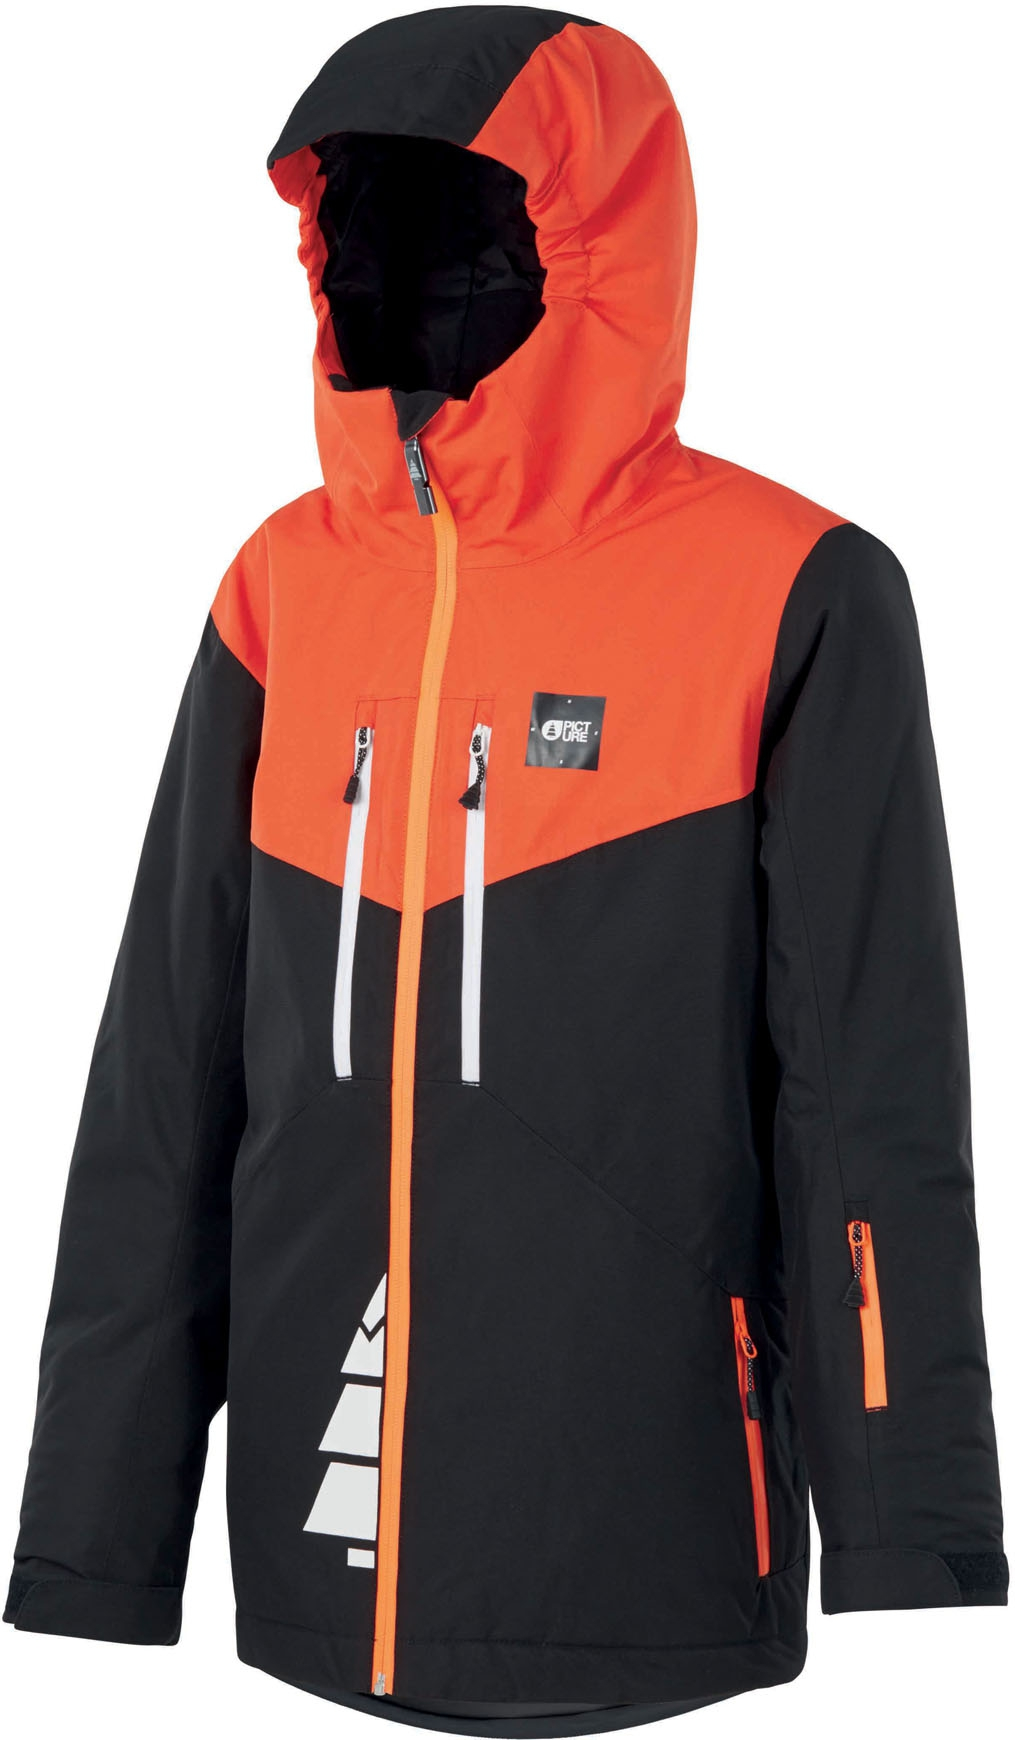 S 8 THE NORTH FACE YOUTH BOYS MILO DOWN INSULATED WINTER JACKET BLACK